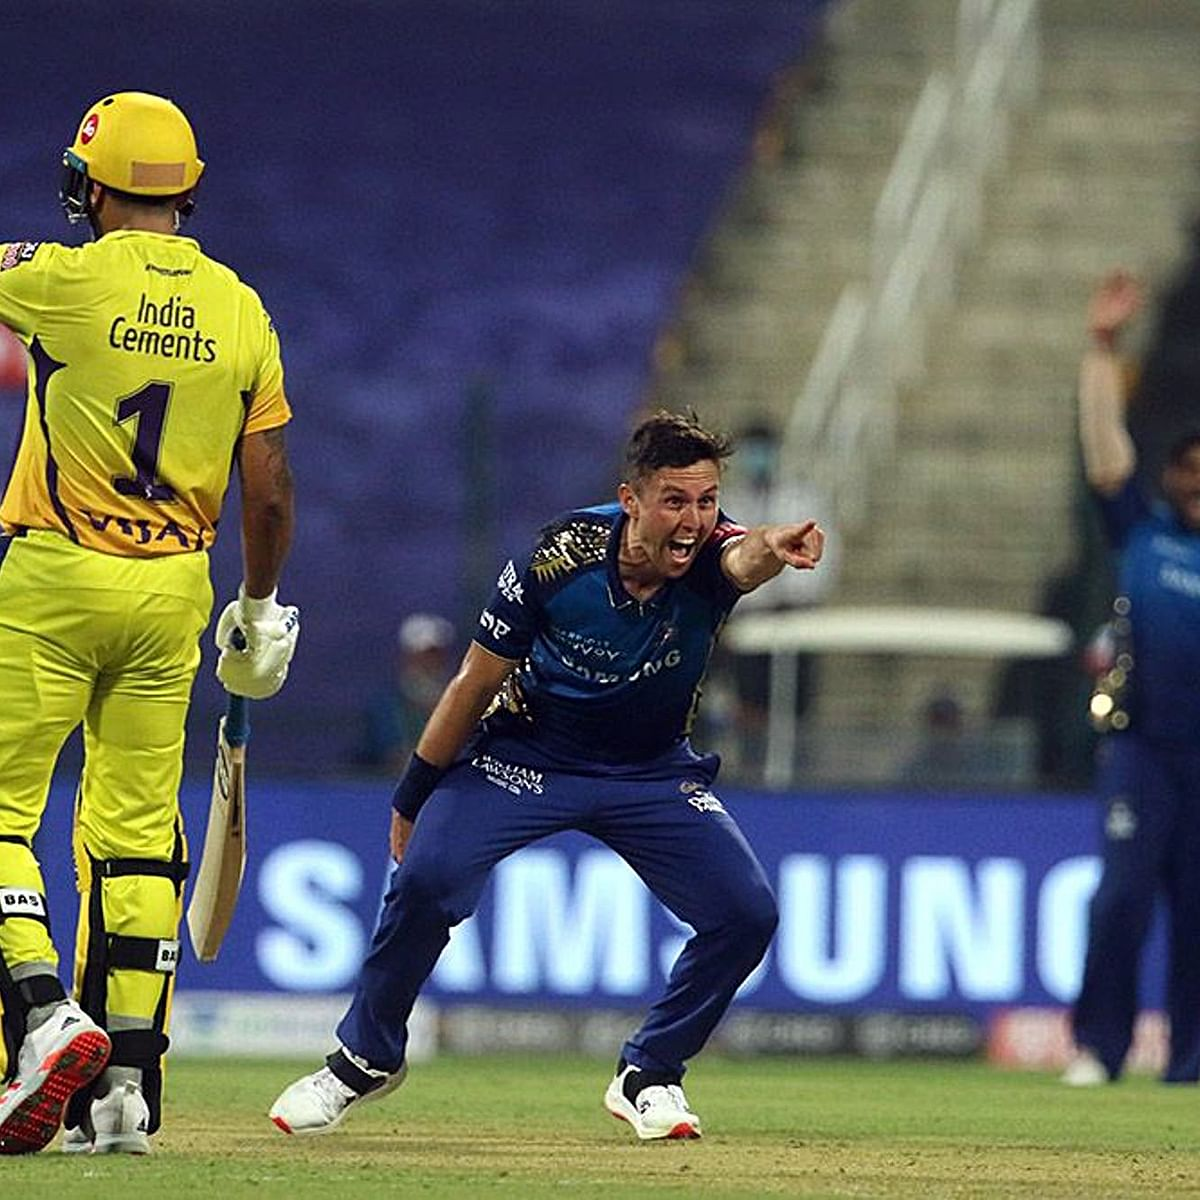 Over 20 crore people watched Mumbai Indians vs Chennai Super Kings, high ever for a league opener: Jay Shah